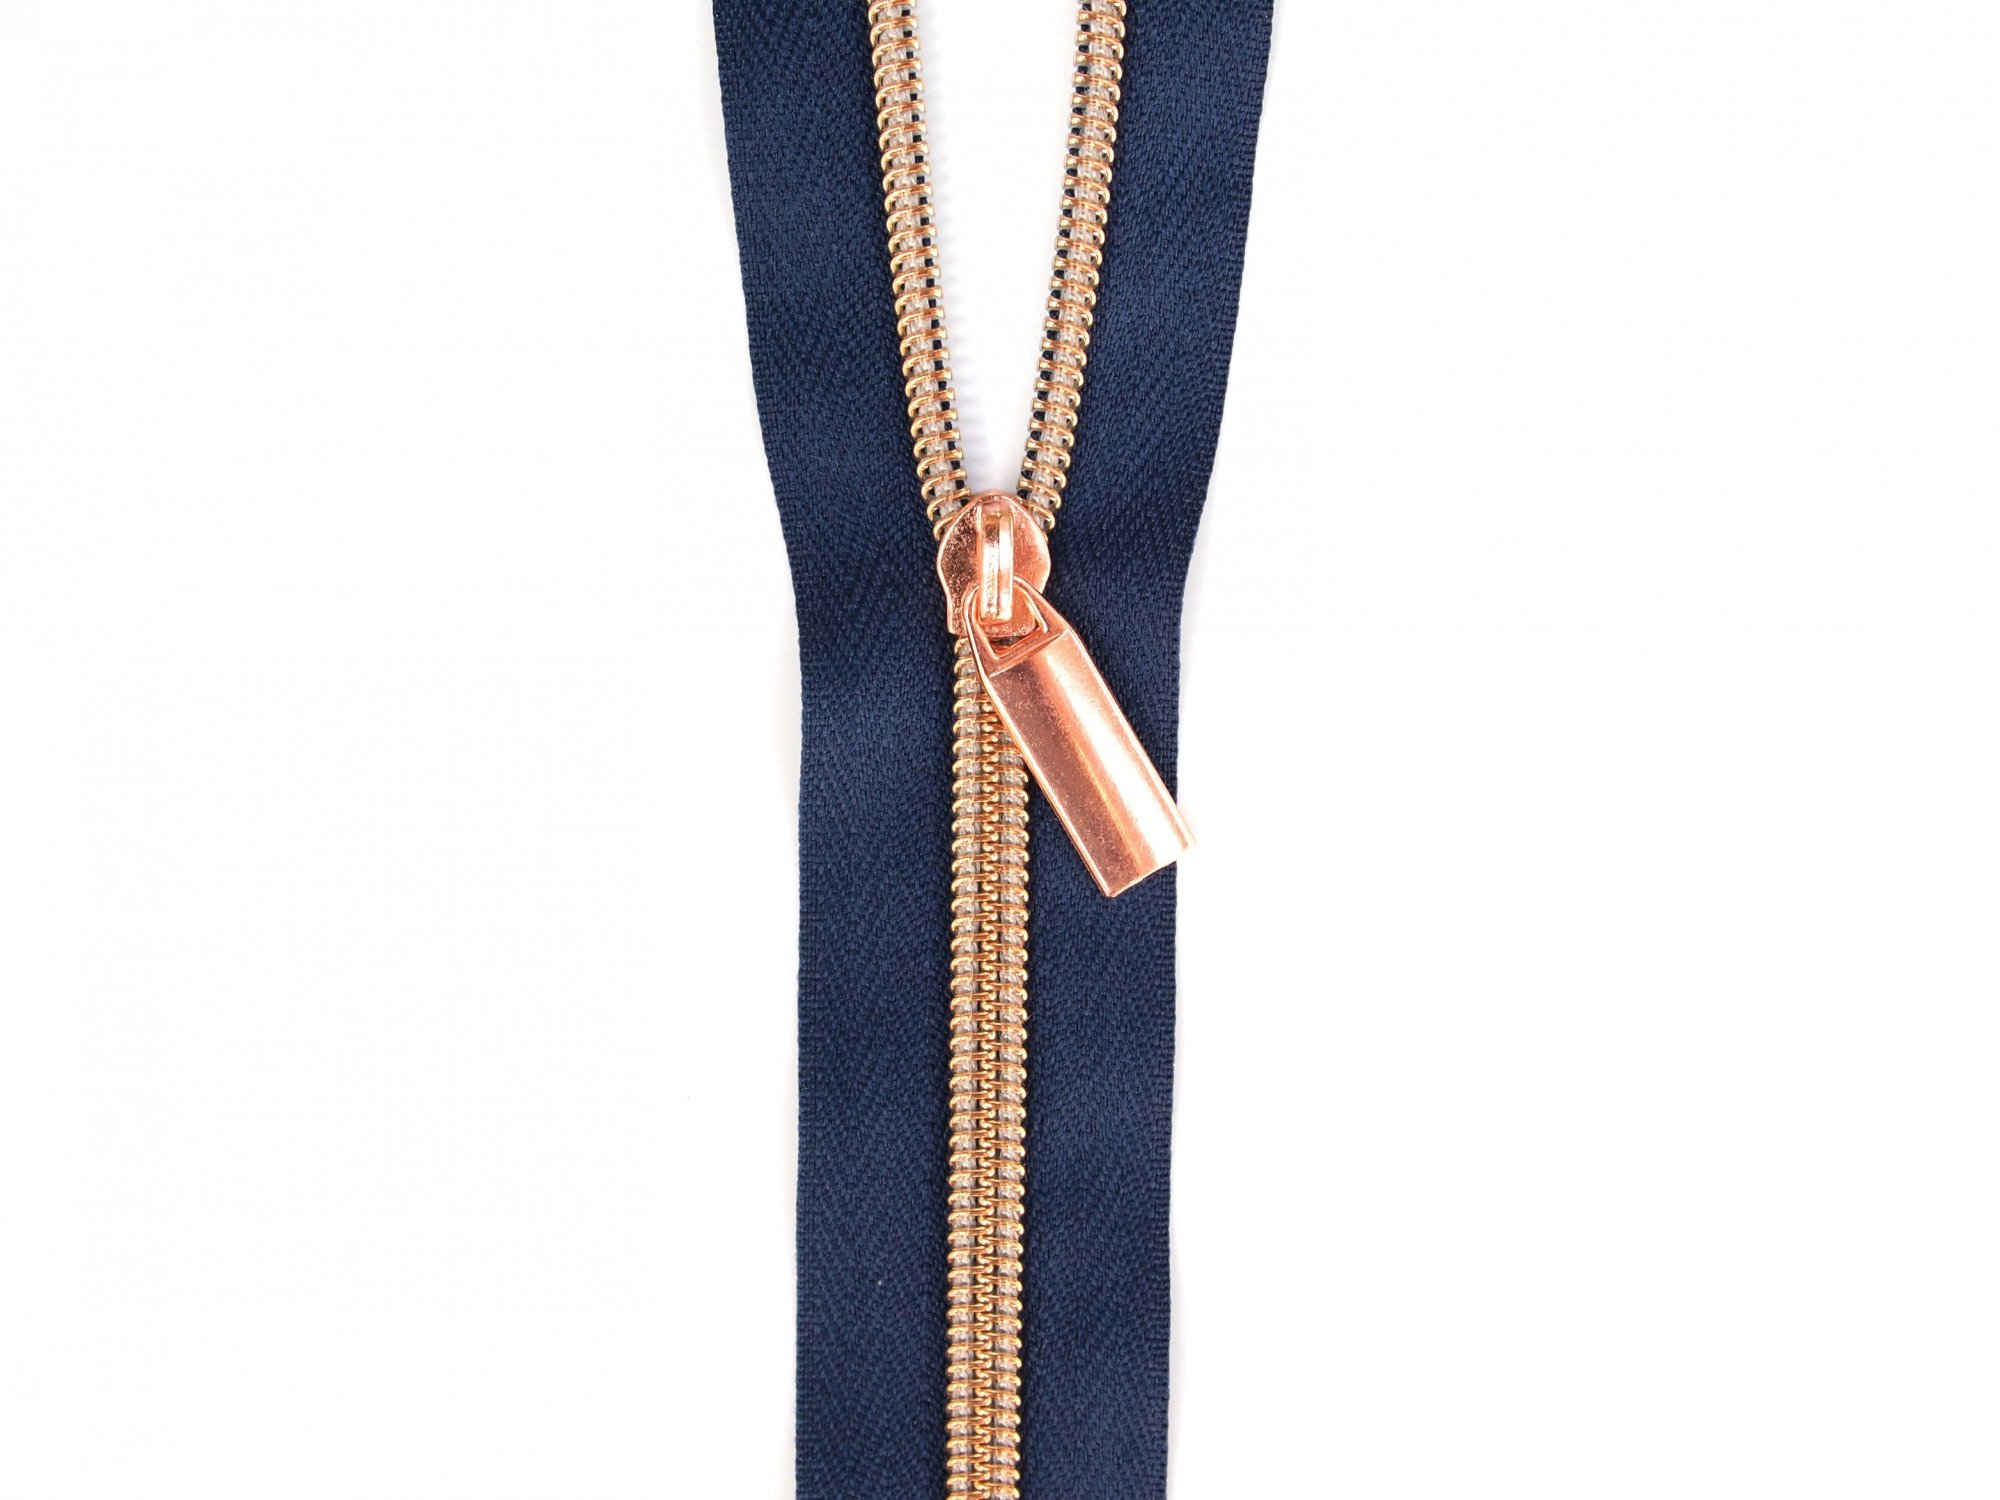 Zipper Tape - Navy Tape & Copper Zipper